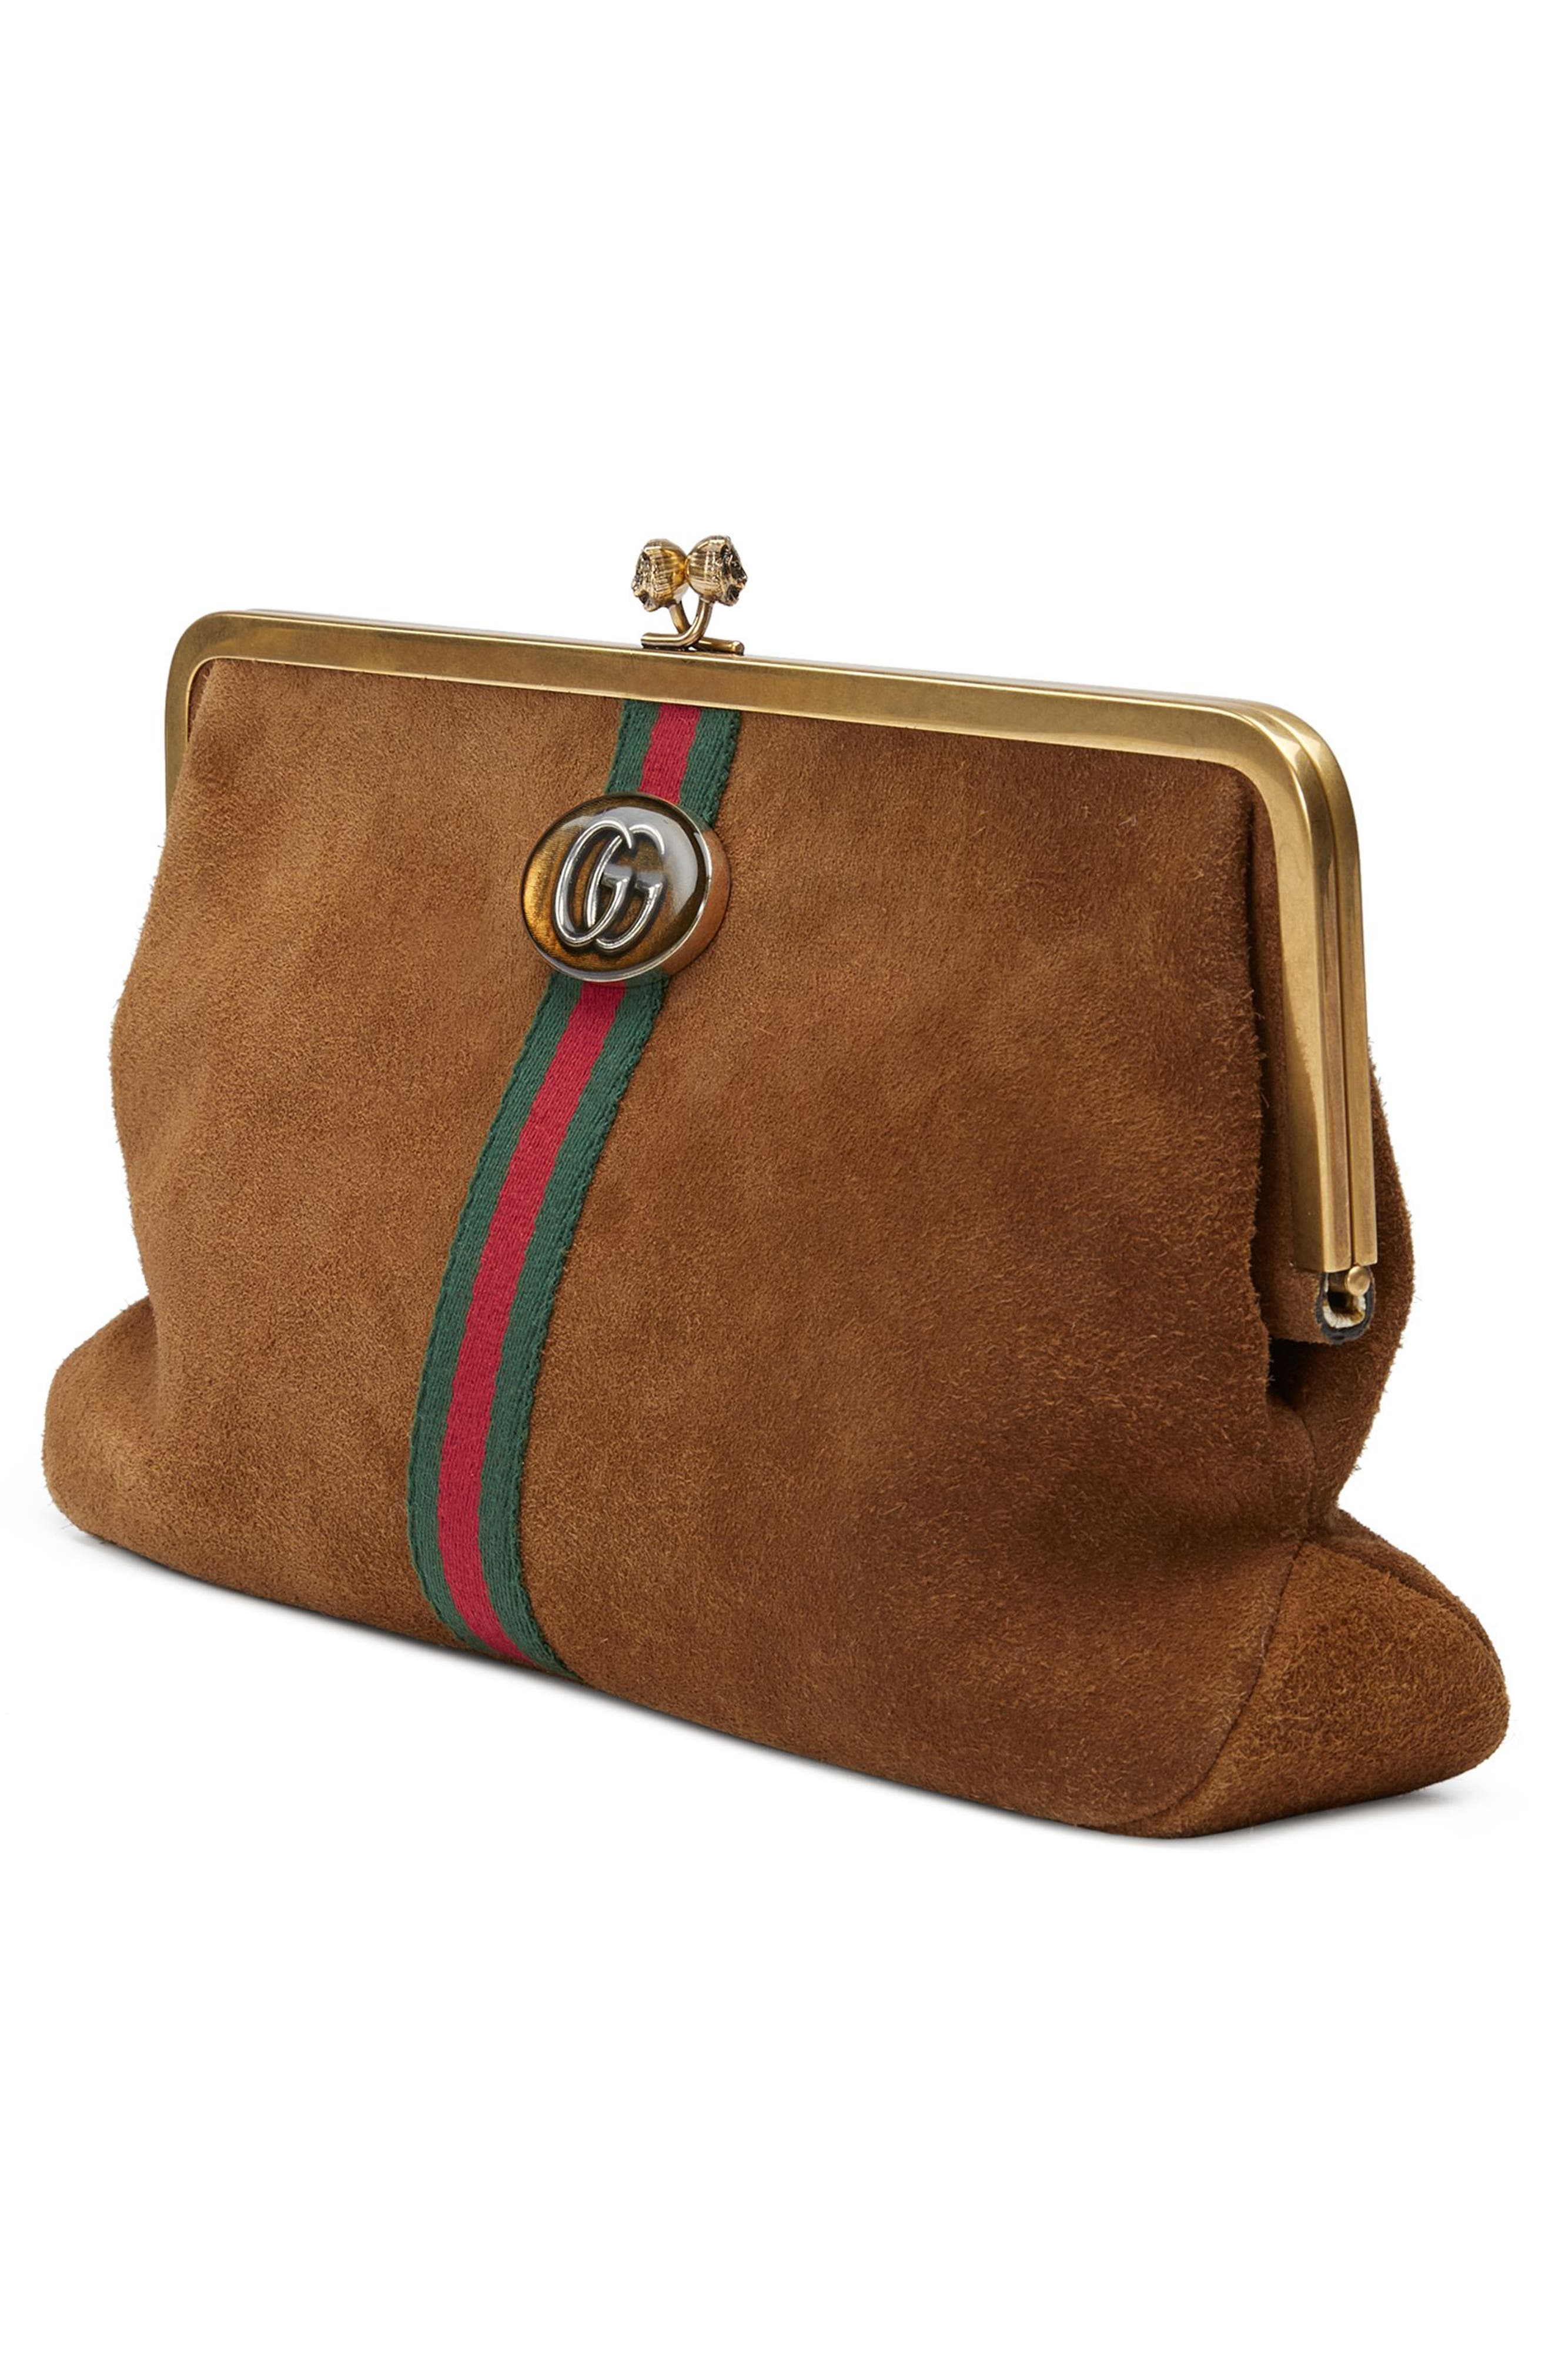 Ophidia Suede Frame Clutch,                             Alternate thumbnail 4, color,                             200